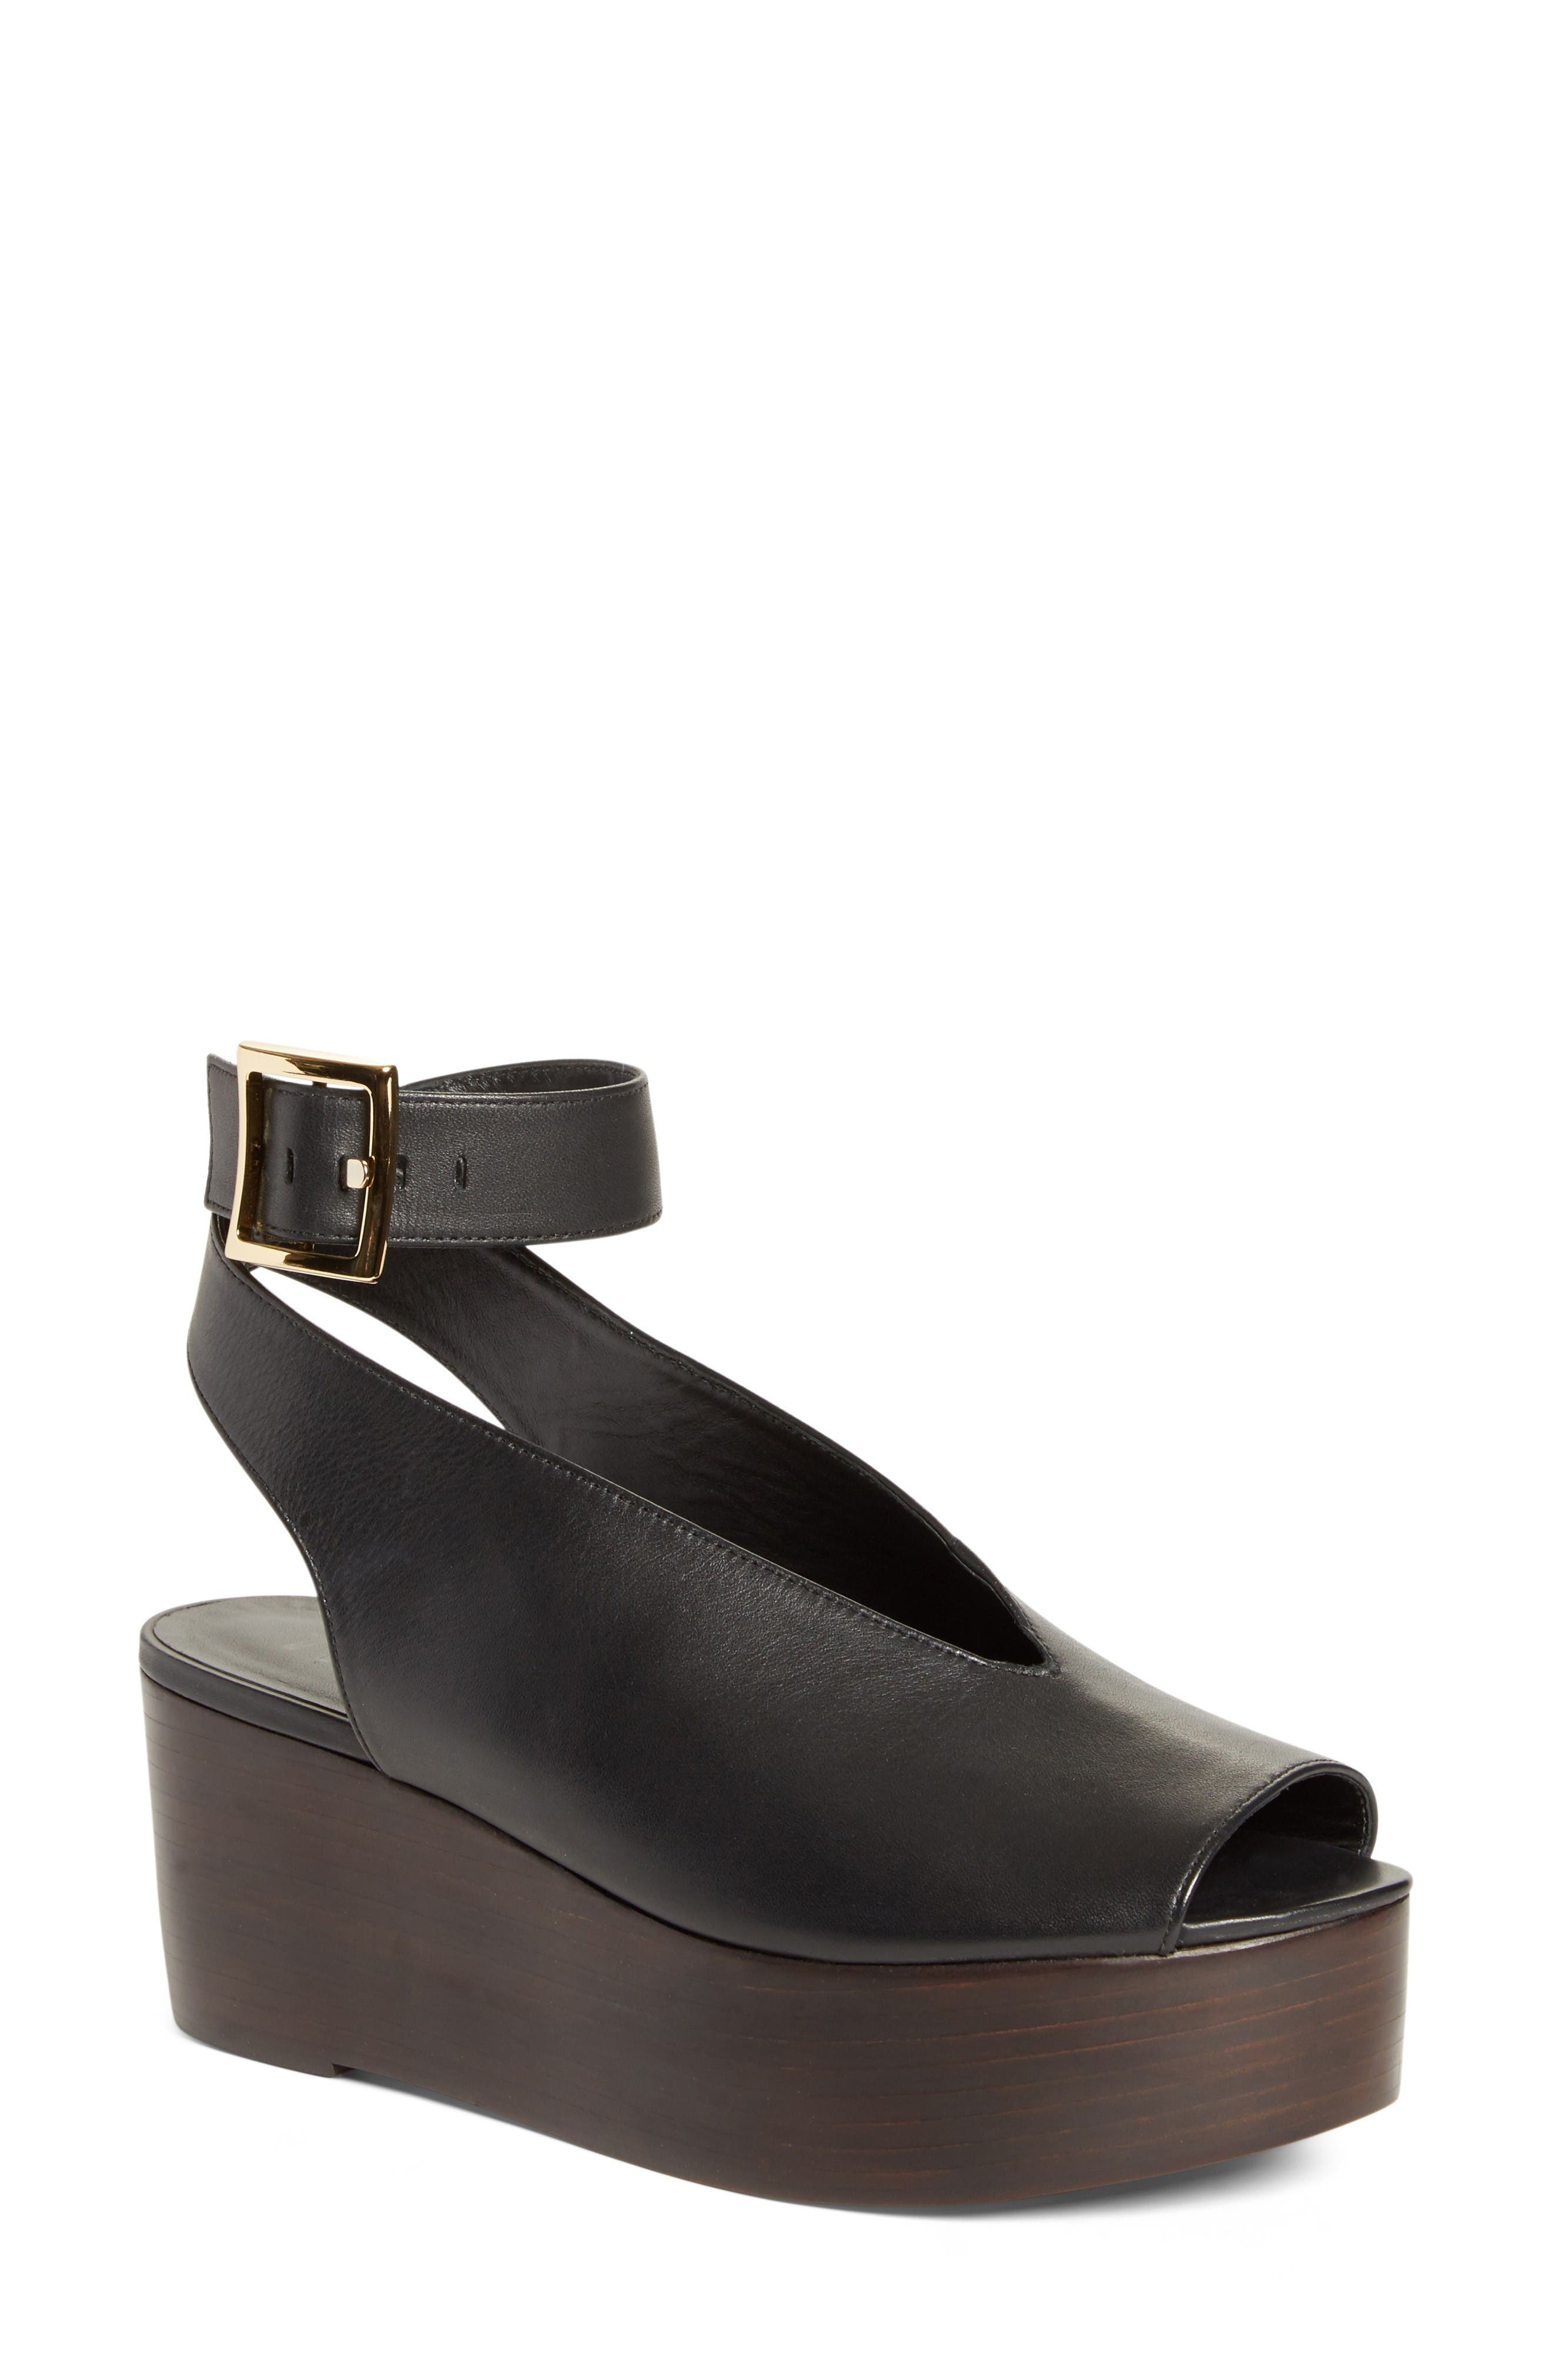 Alternate Image 1 Selected - Tibi Camilla Platform Sandal (Women)